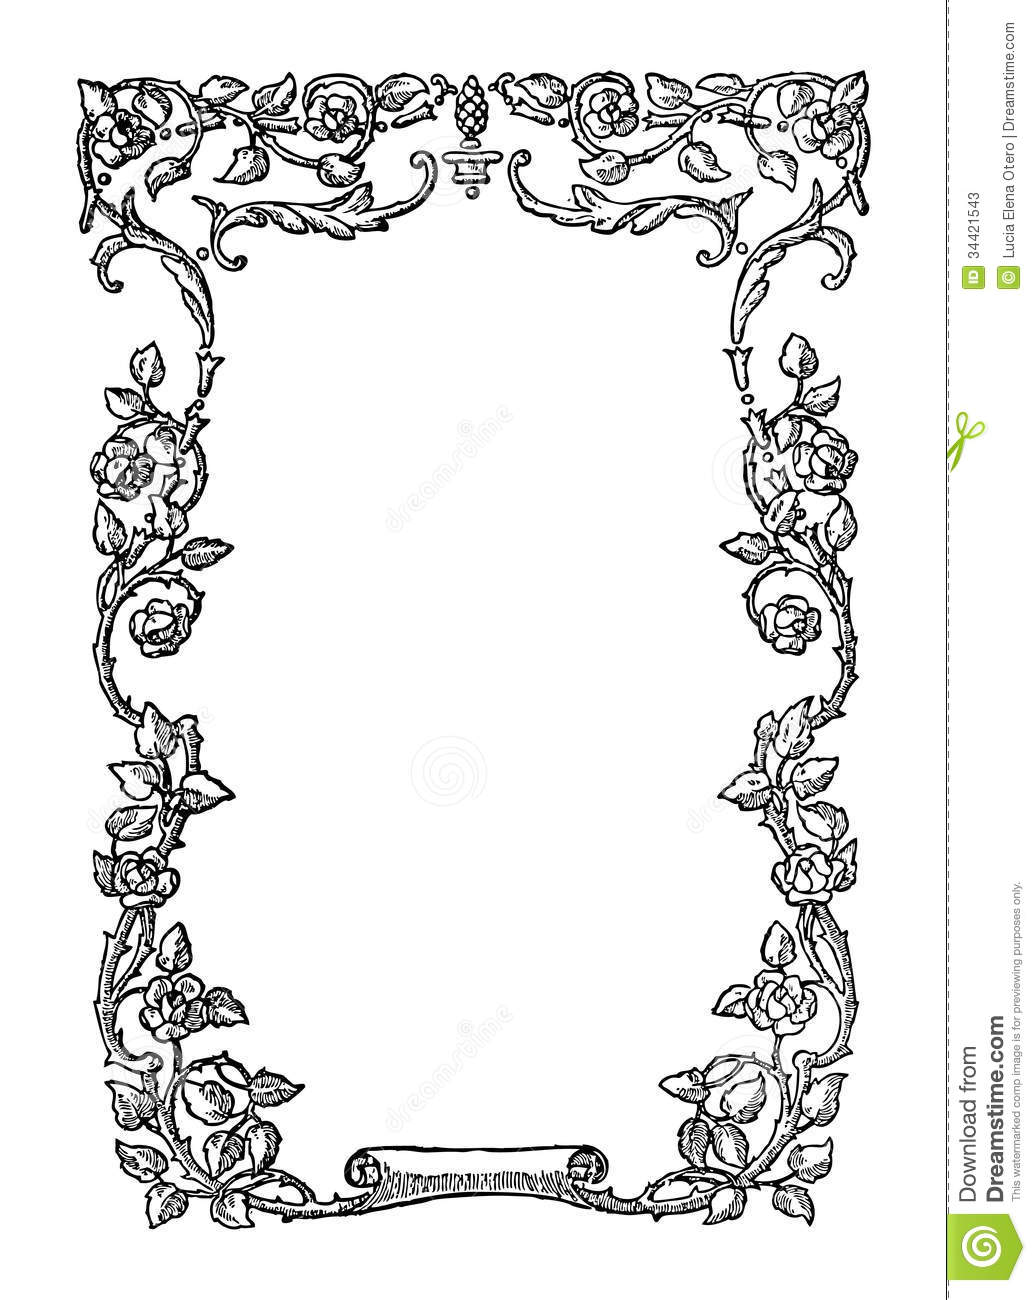 Vintage frame stock vector. Illustration of distressed